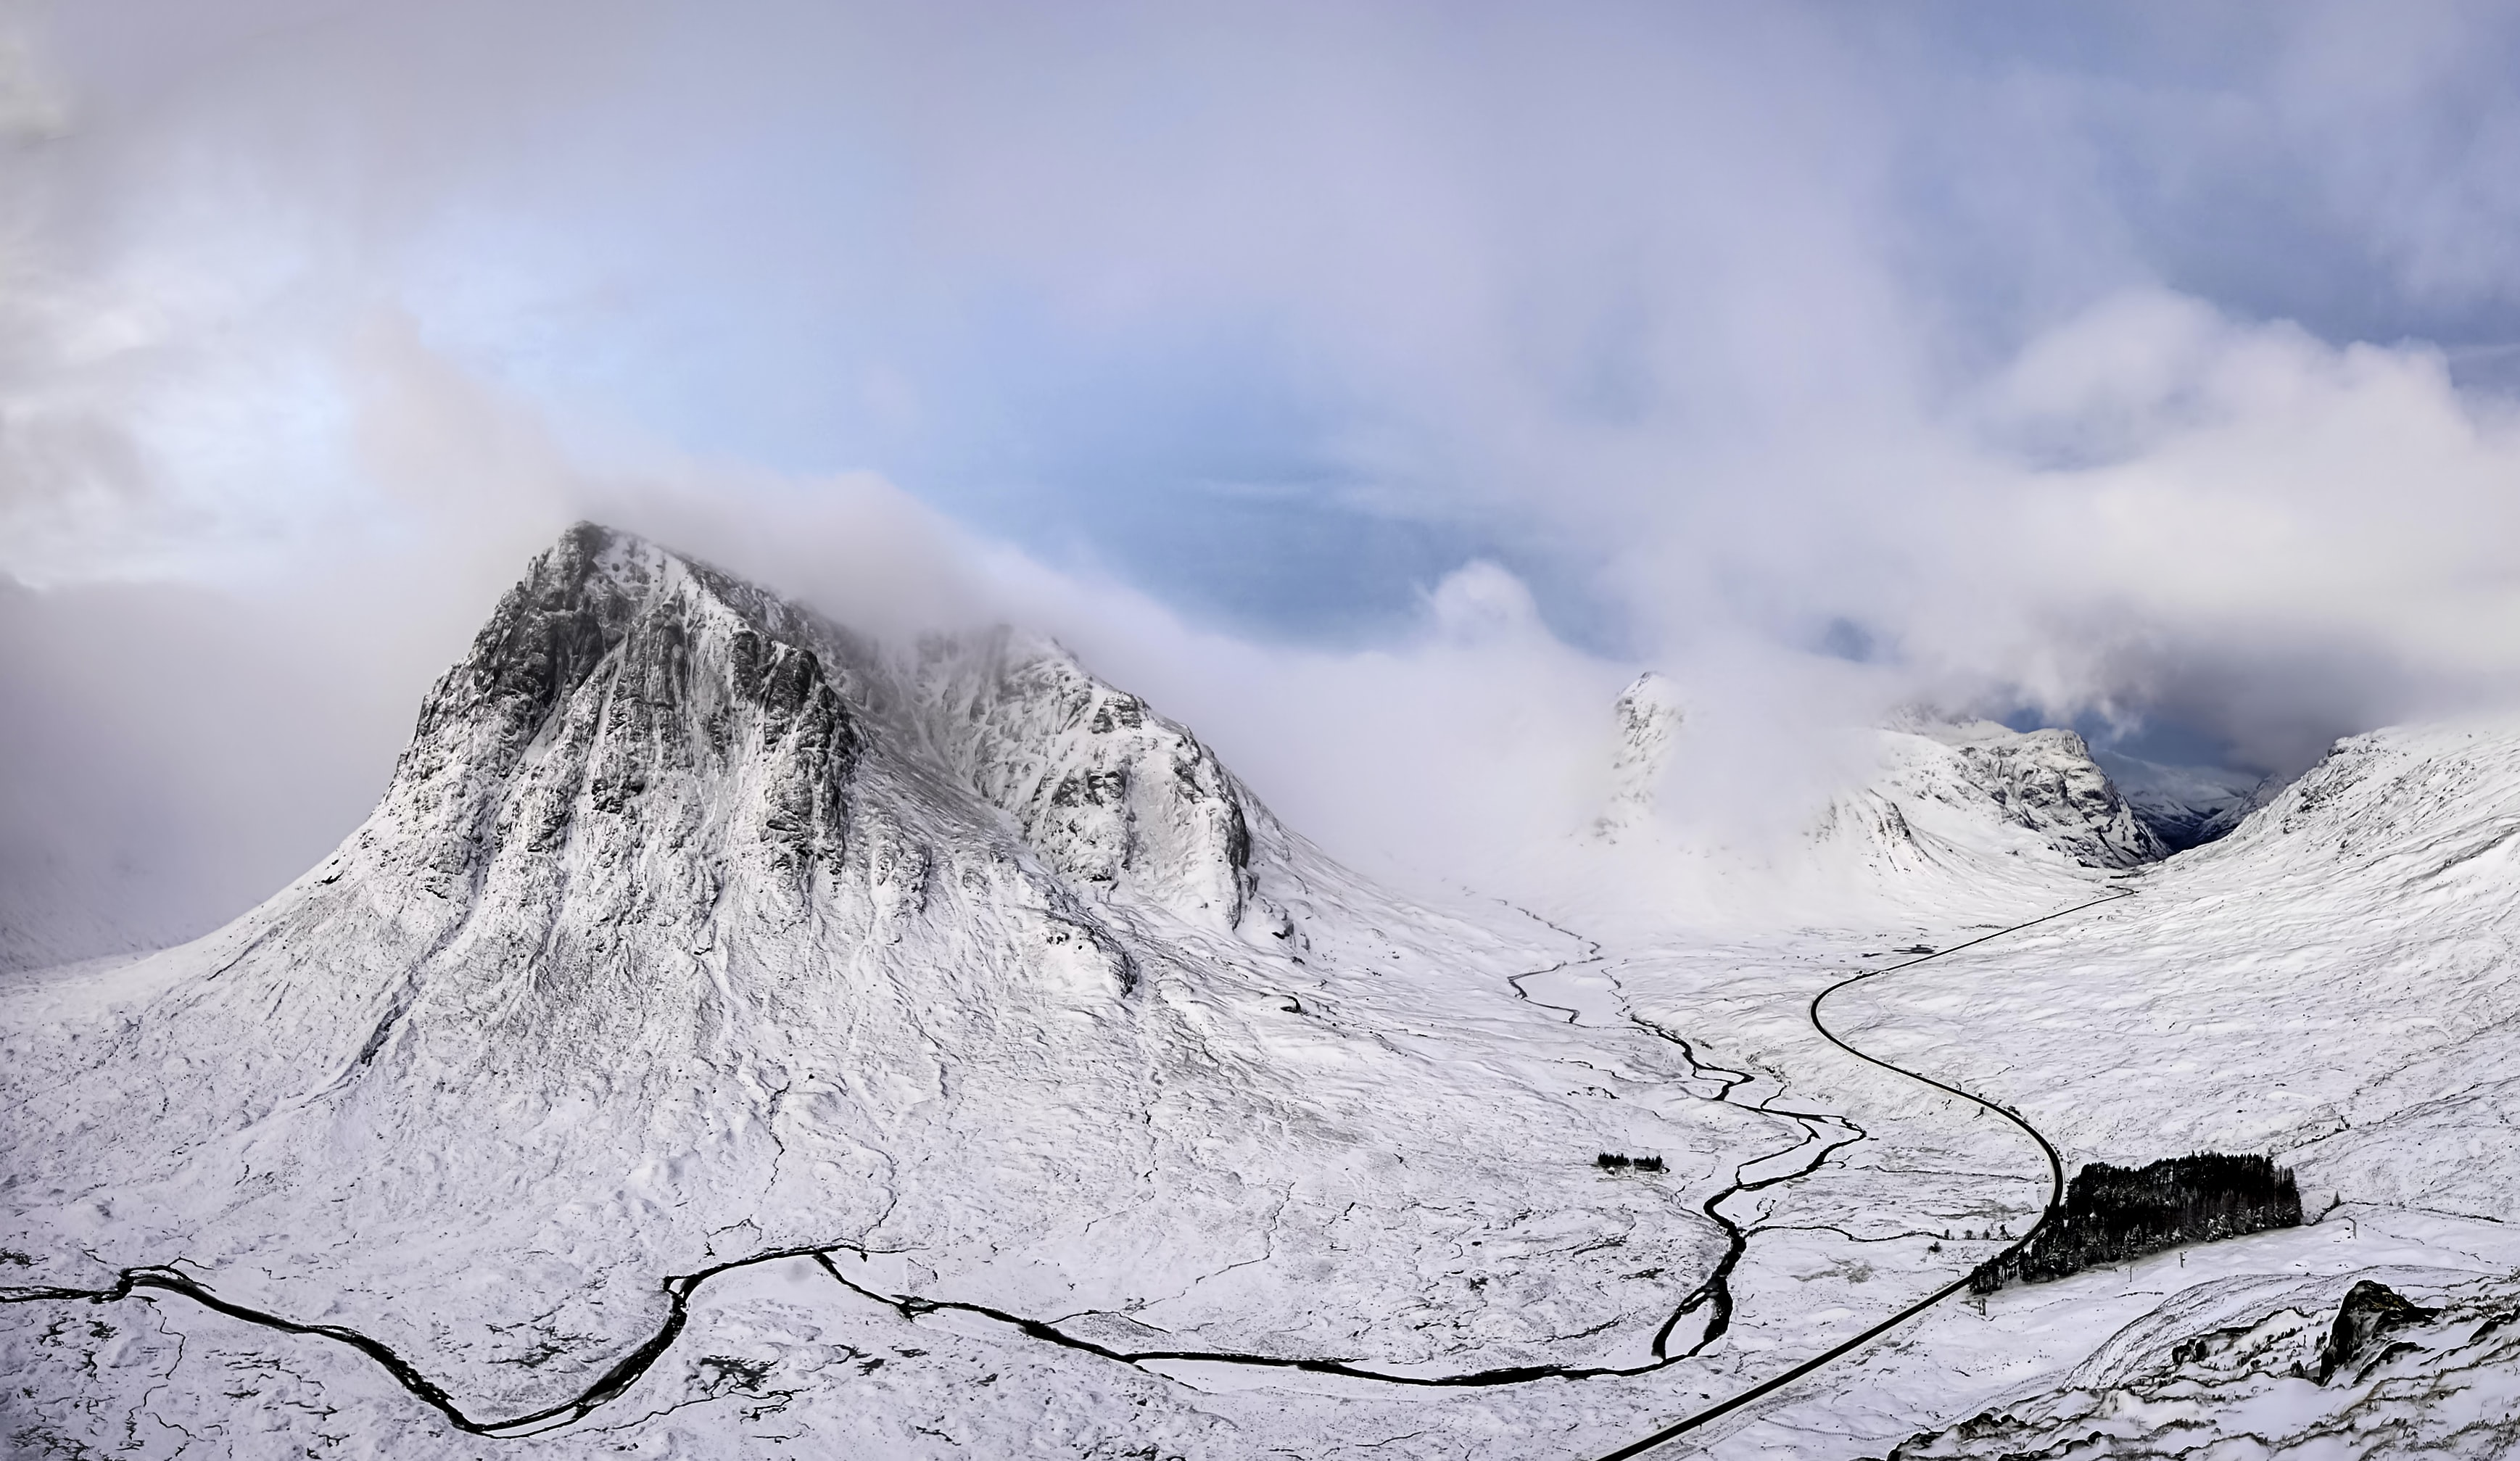 A snowy mountain valley in Glencoe